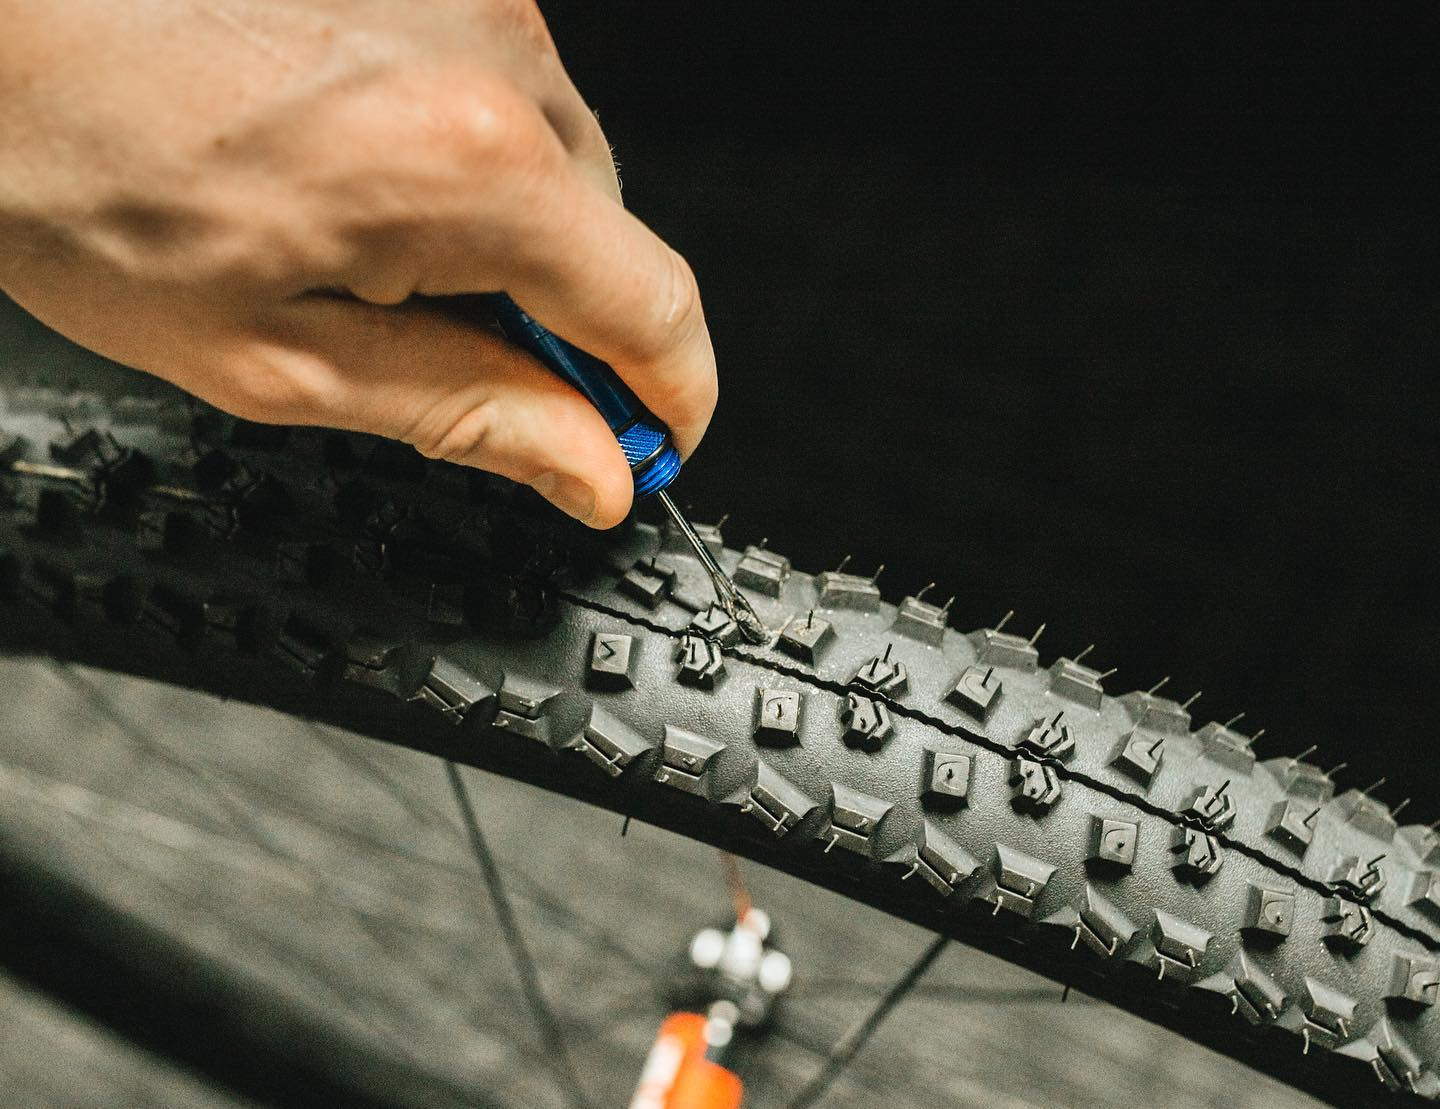 KOM Cycling attacks the flats with light weight Tubeless Tire Repair Tool